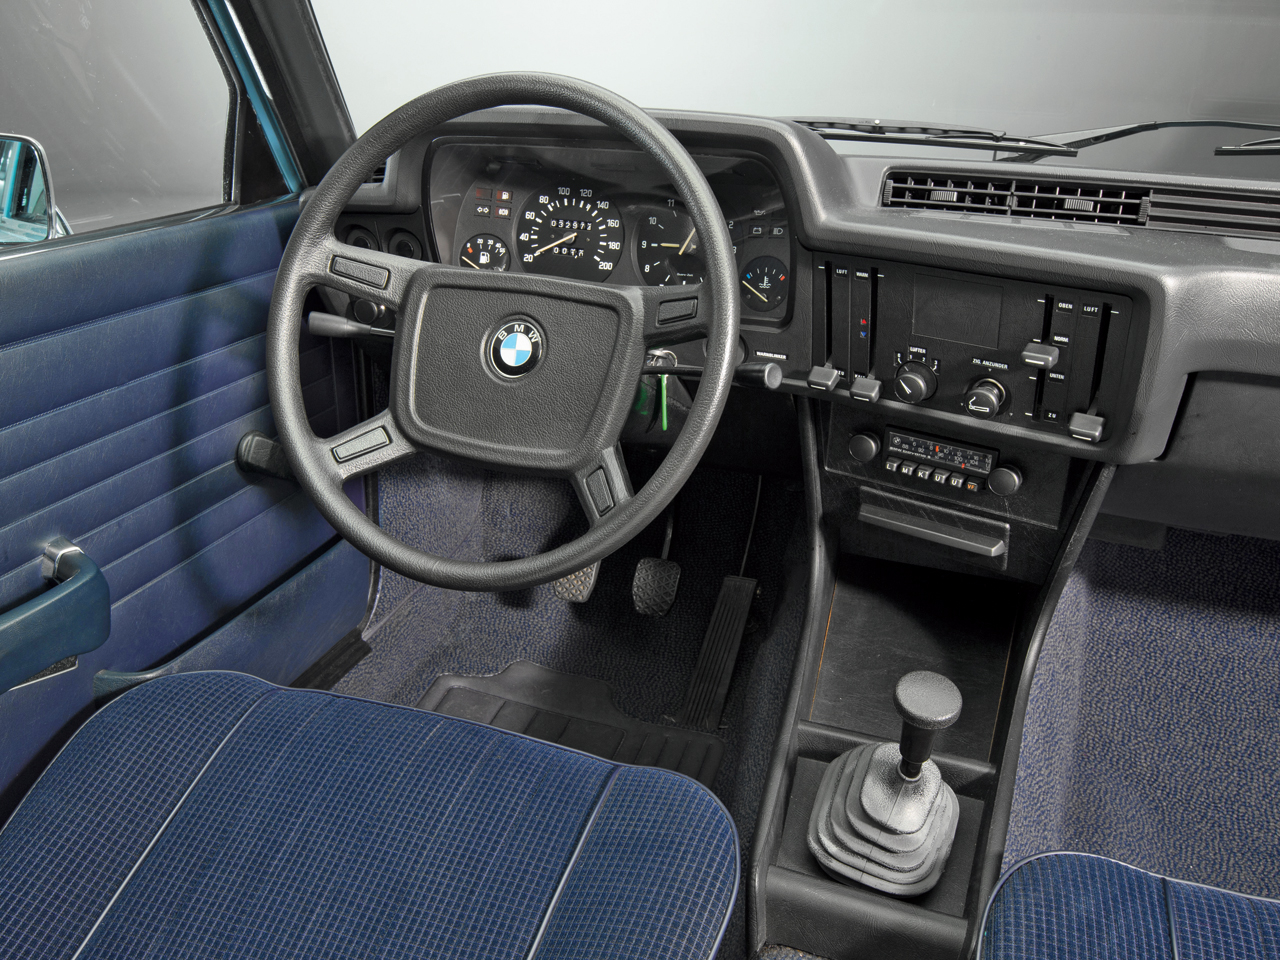 BMW 3 series 318 1975 Technical specifications | Interior and ...